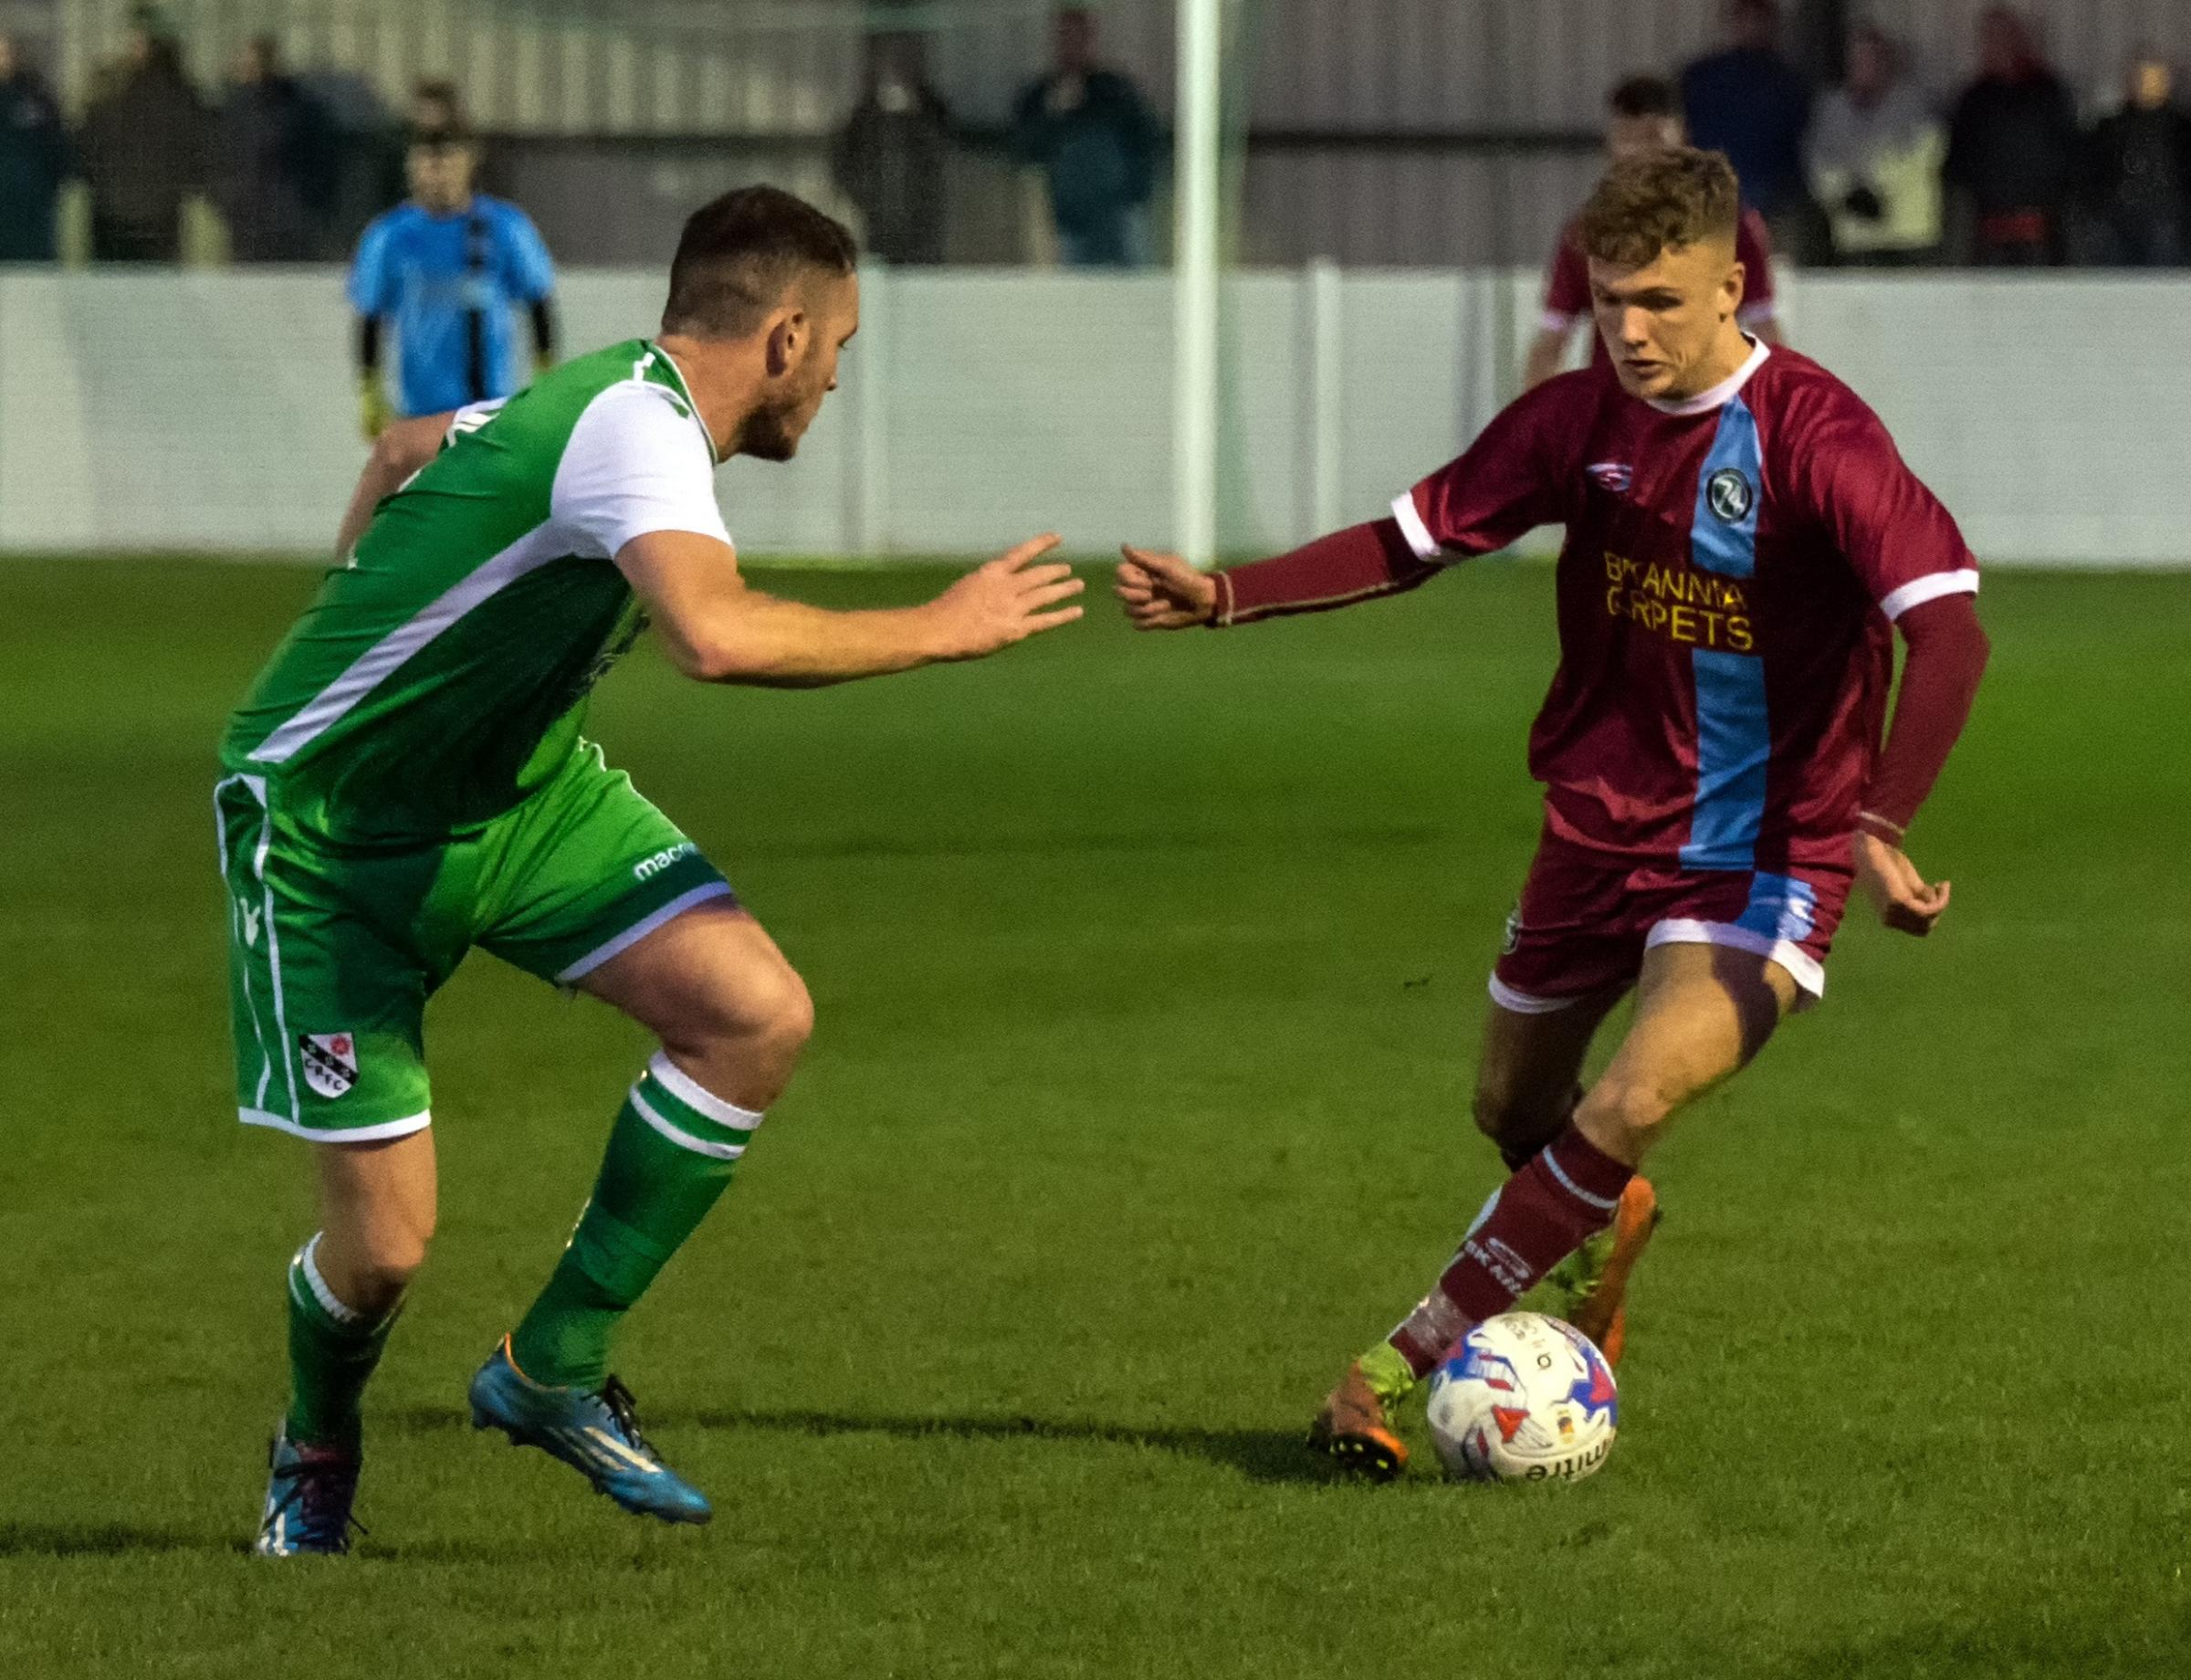 Wide man Taylor Kennerley has added goals to his game for 1874 Northwich this season and his improvement has been rewarded with the offer of a contract. Picture: Ian Dutton